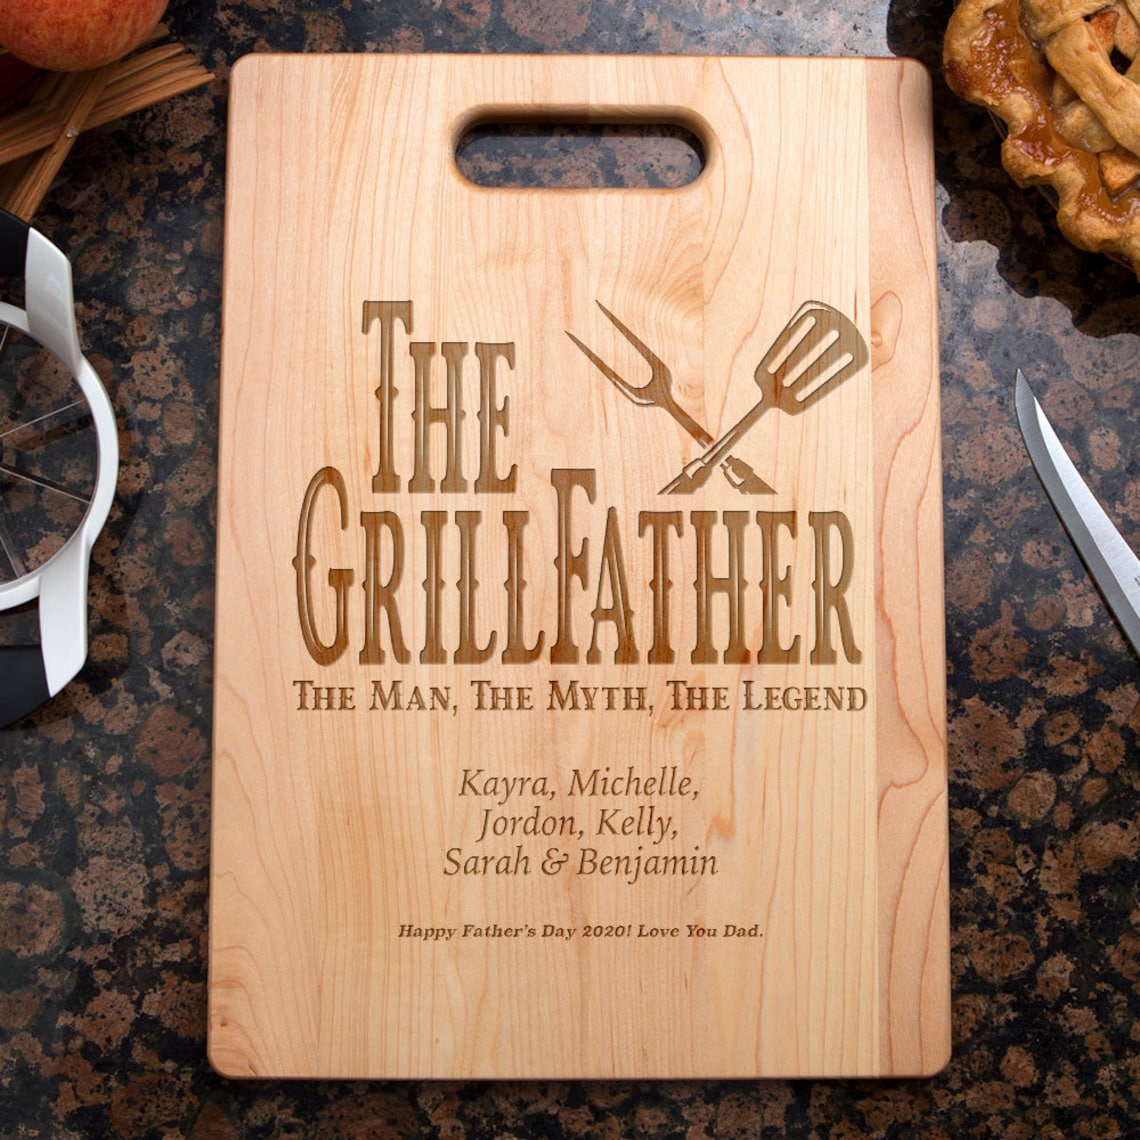 Grilling Gifts for Fathers Day Personalized Grilling Gifts image 3